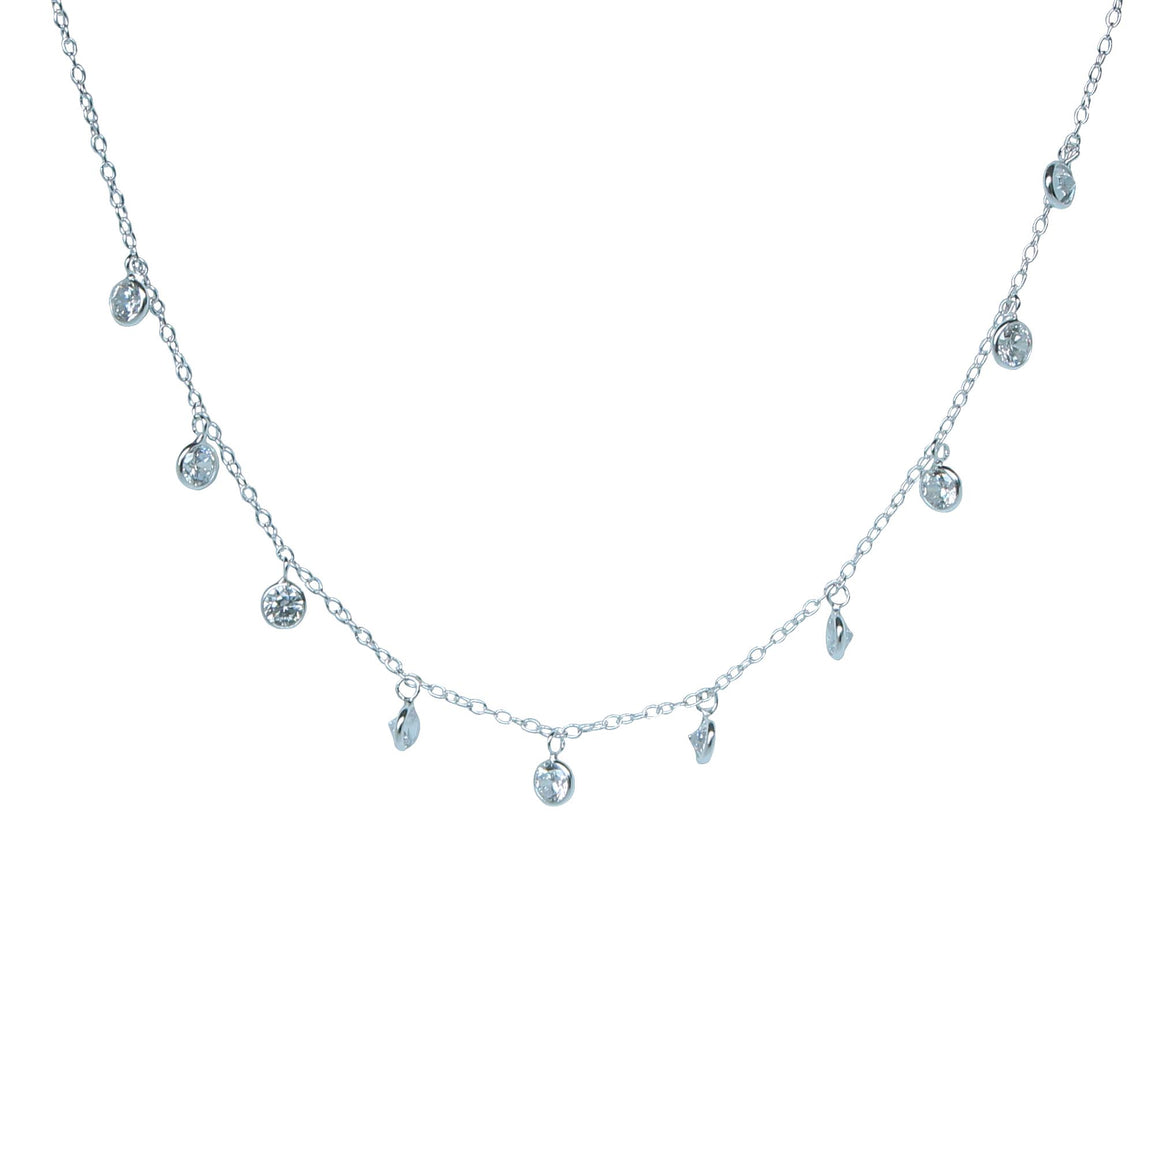 diamond sparkle charm choker necklace in silver by Karma Links Jewellery